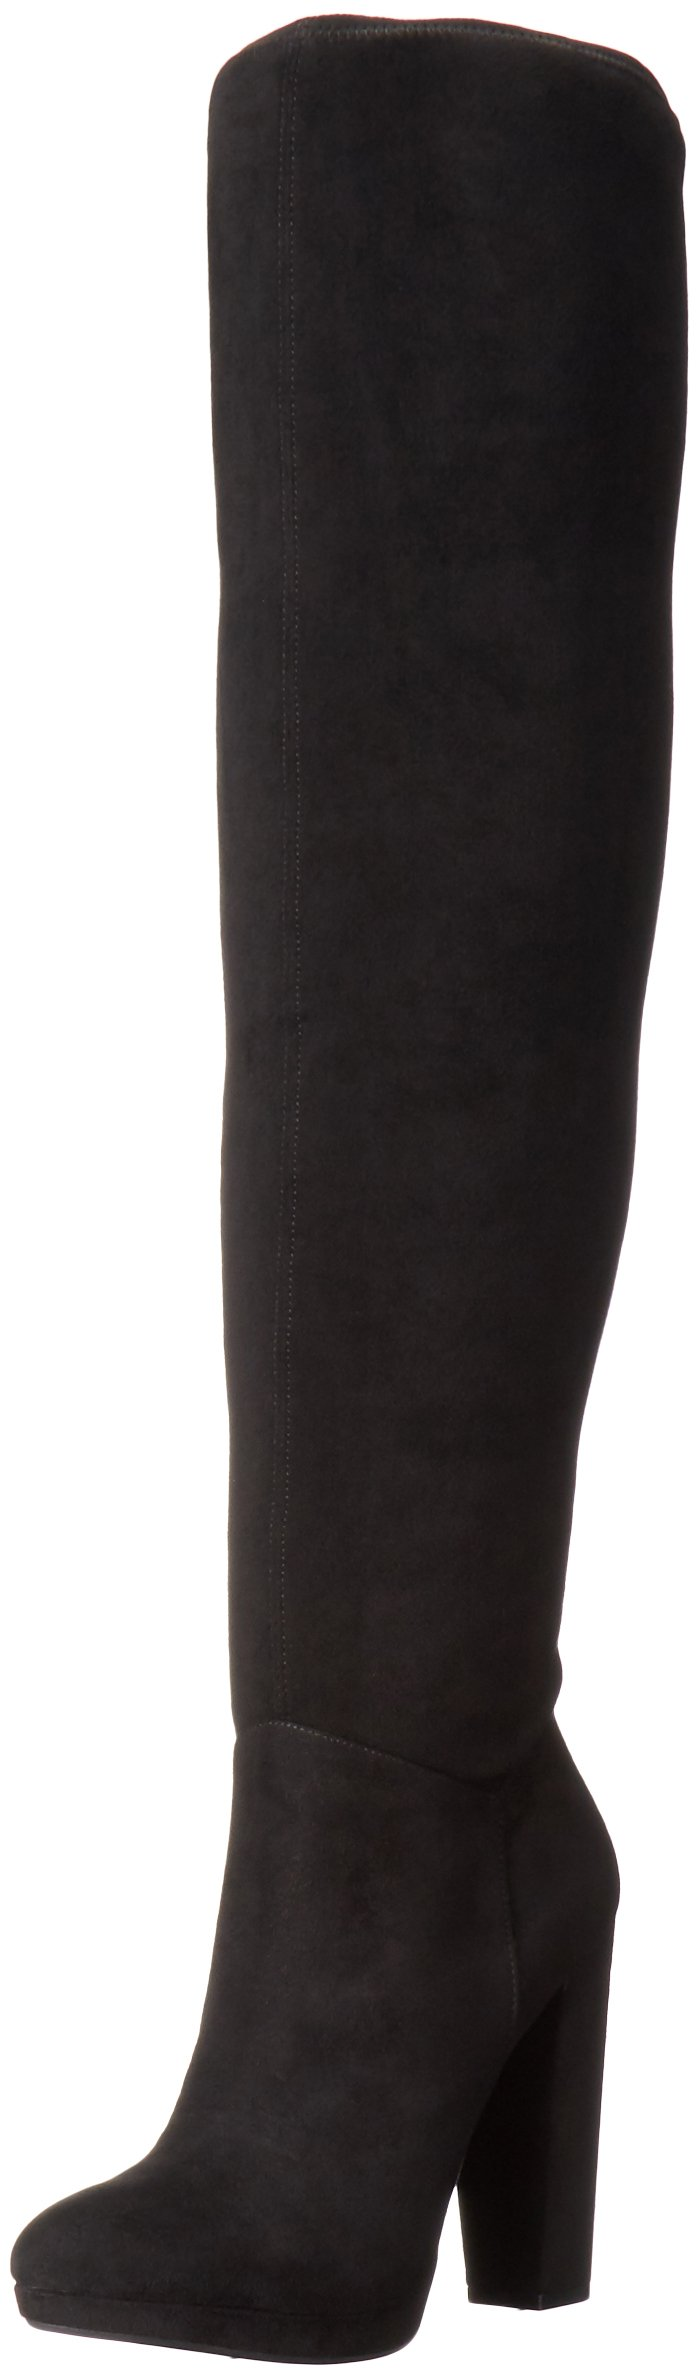 Jessica Simpson Women's Grandie Winter Boot, Black/Black, 8 M US